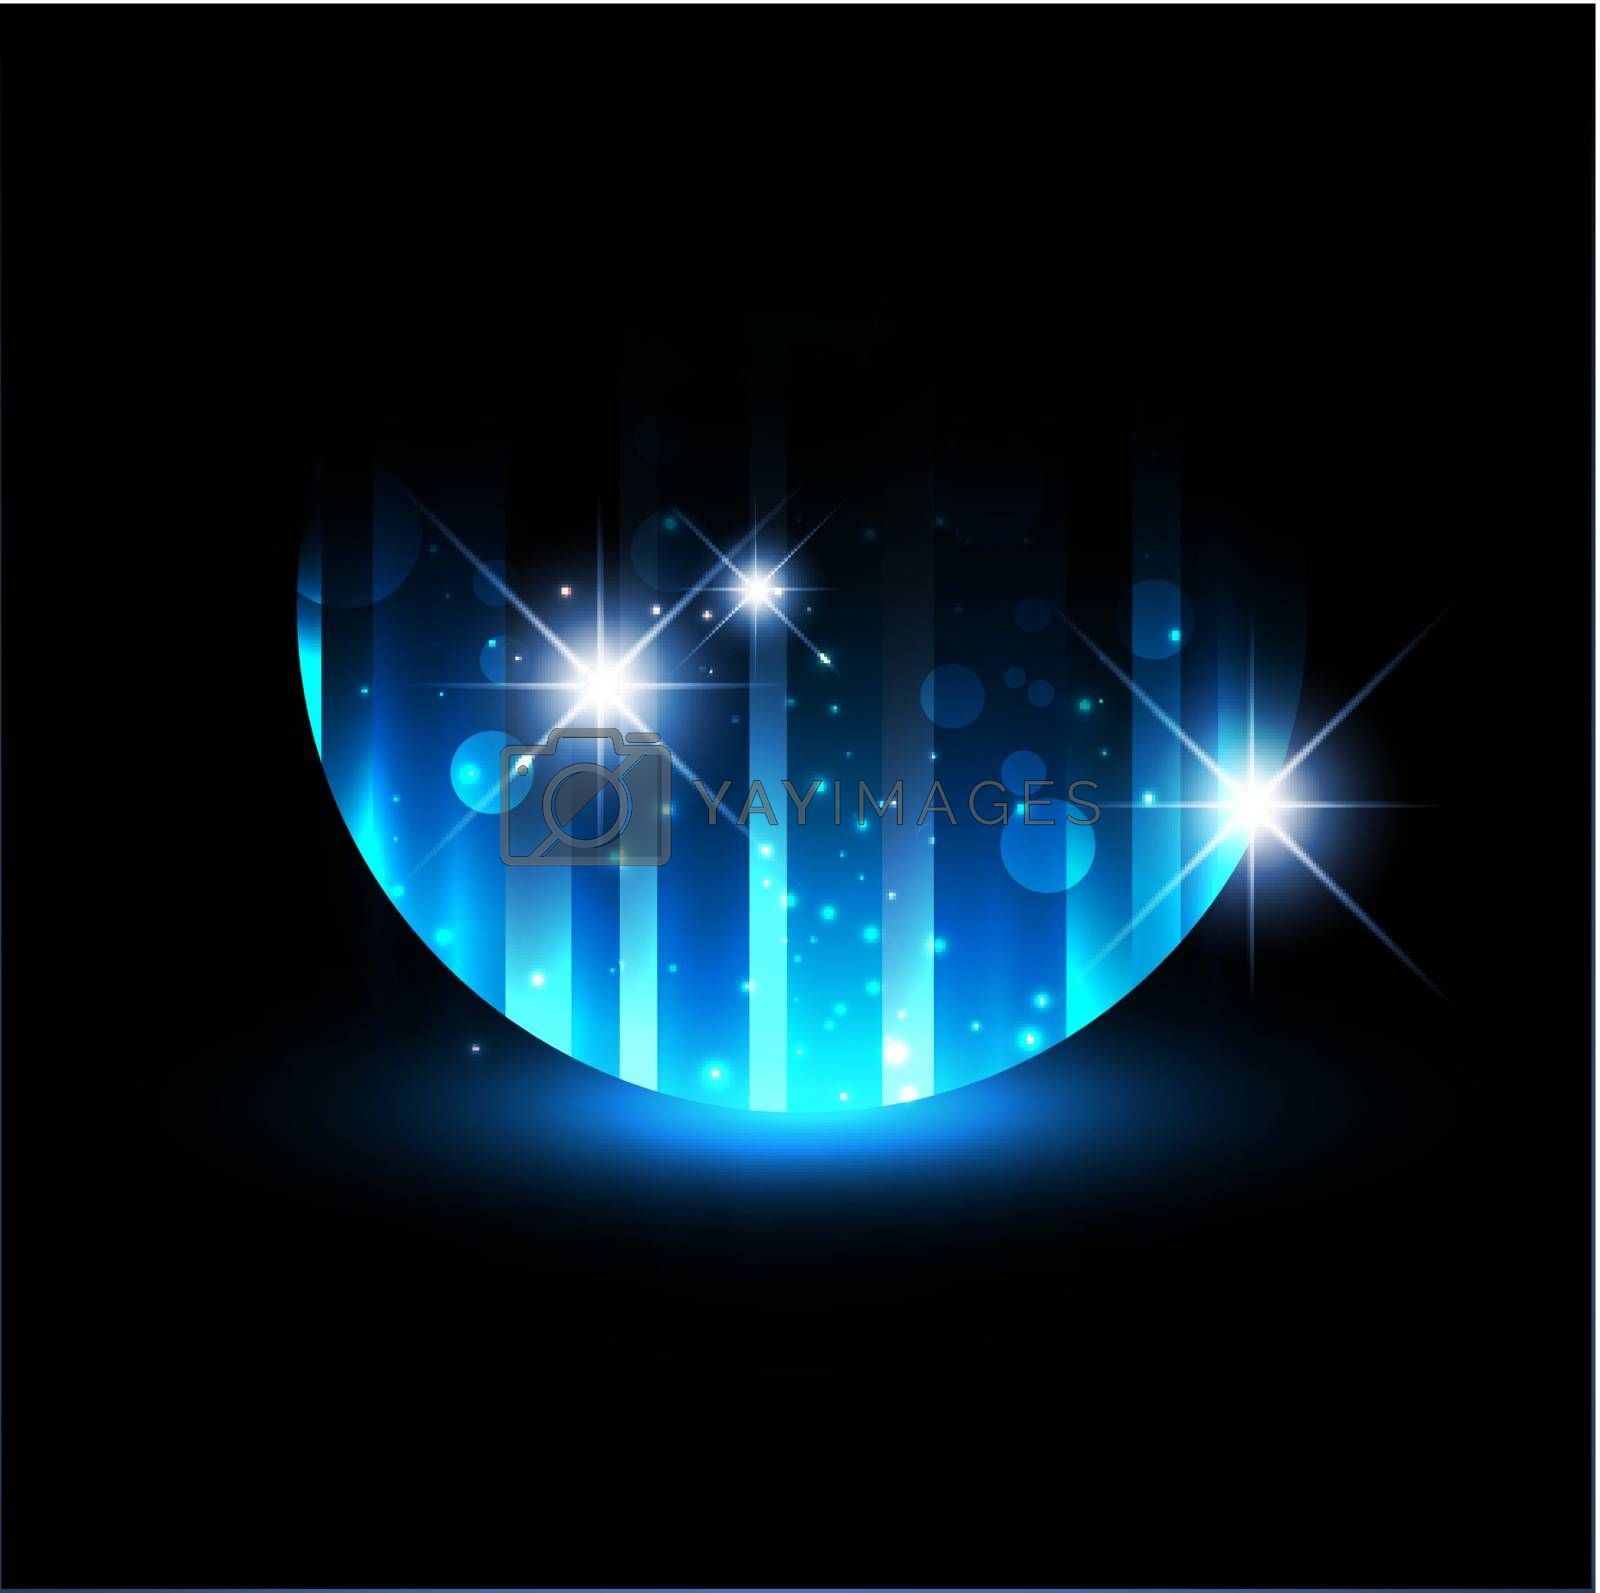 Abstract Night Background With Stars And Bright Blue Light